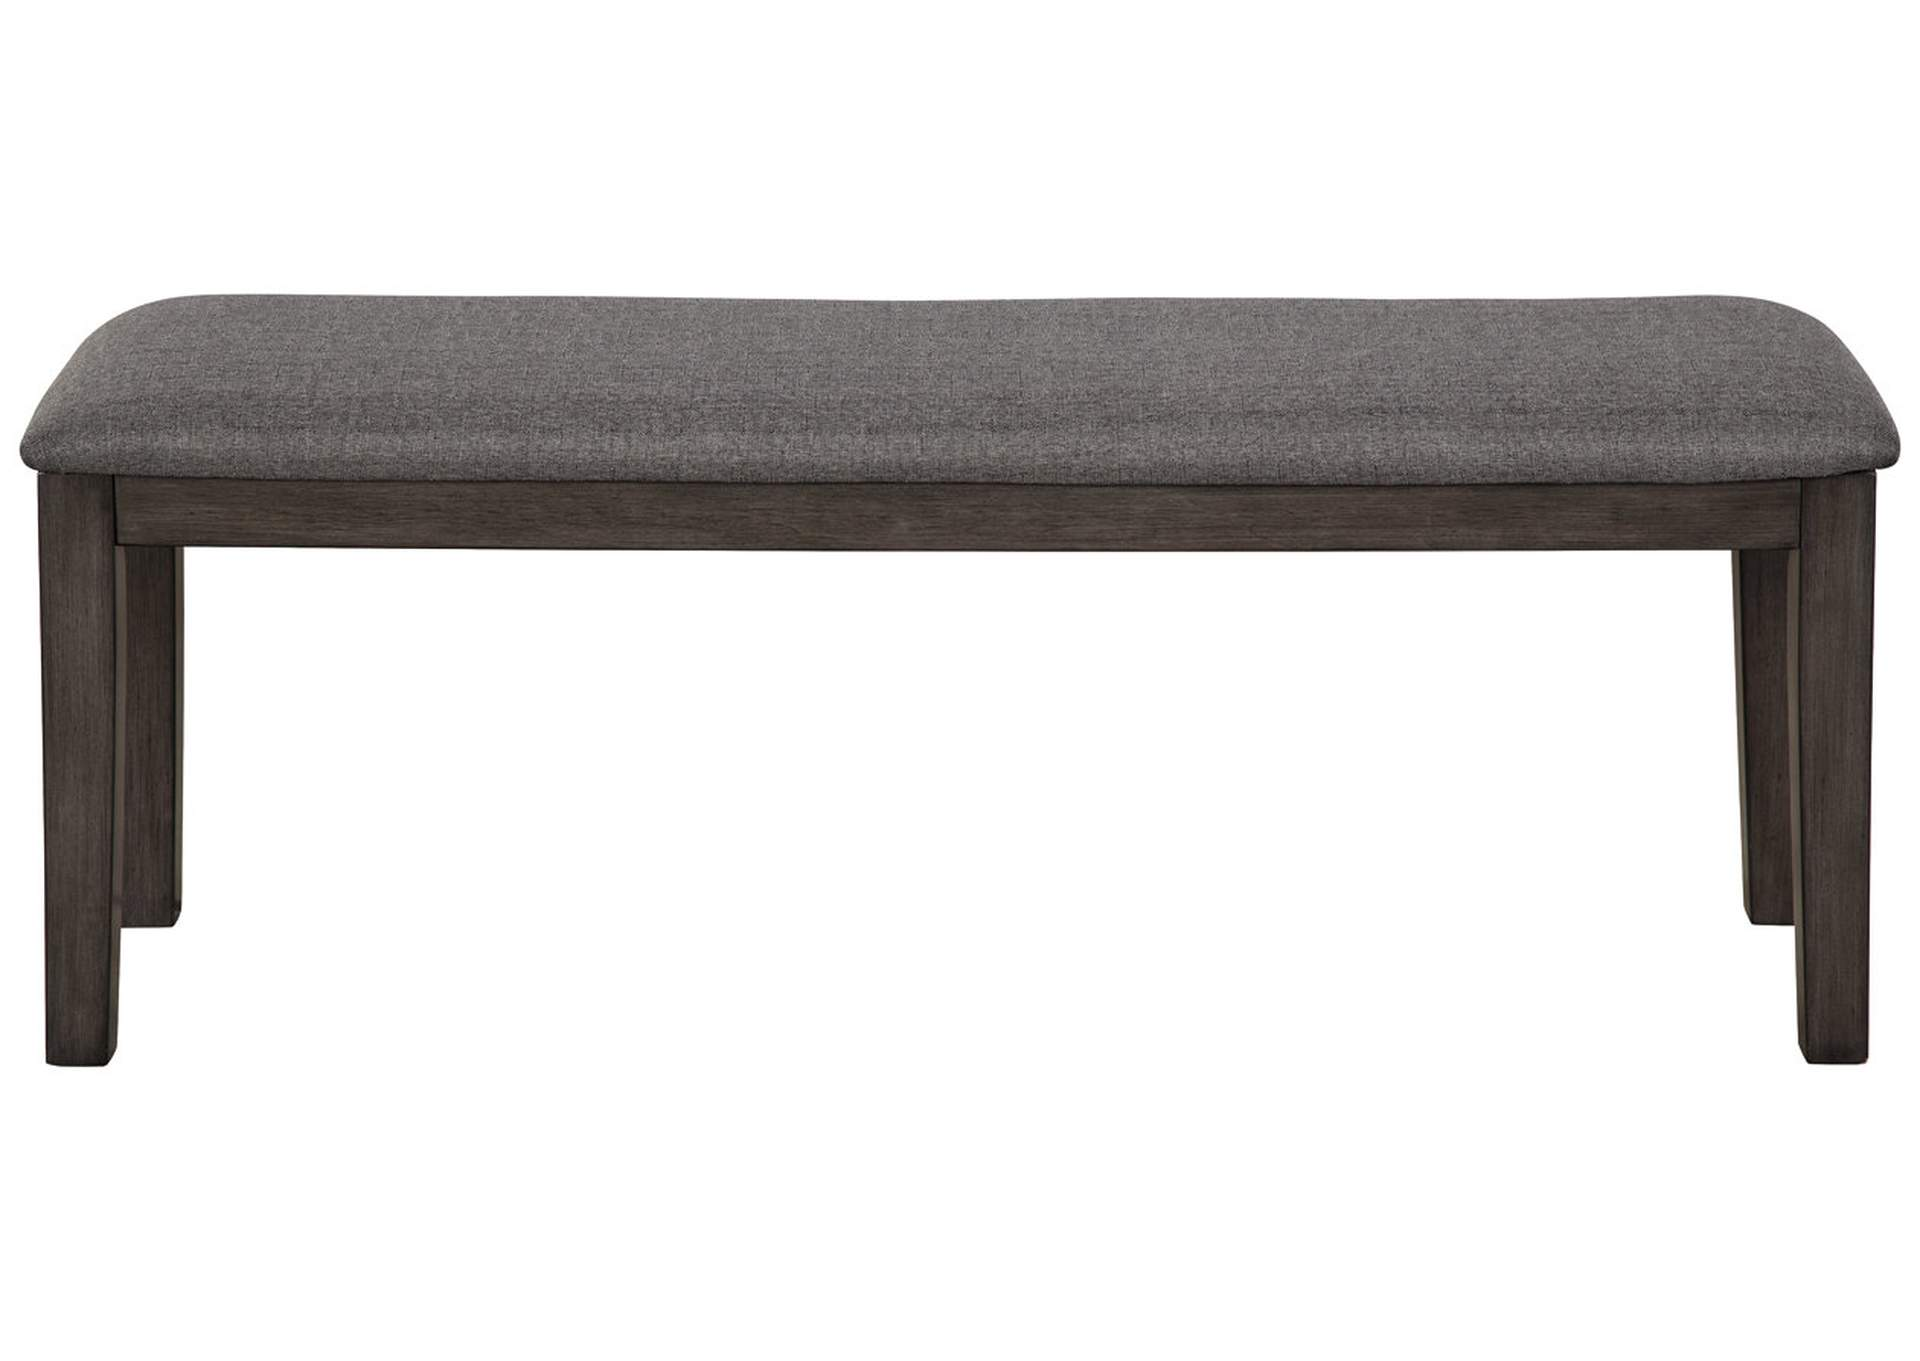 Luvoni Dining Room Bench,Benchcraft